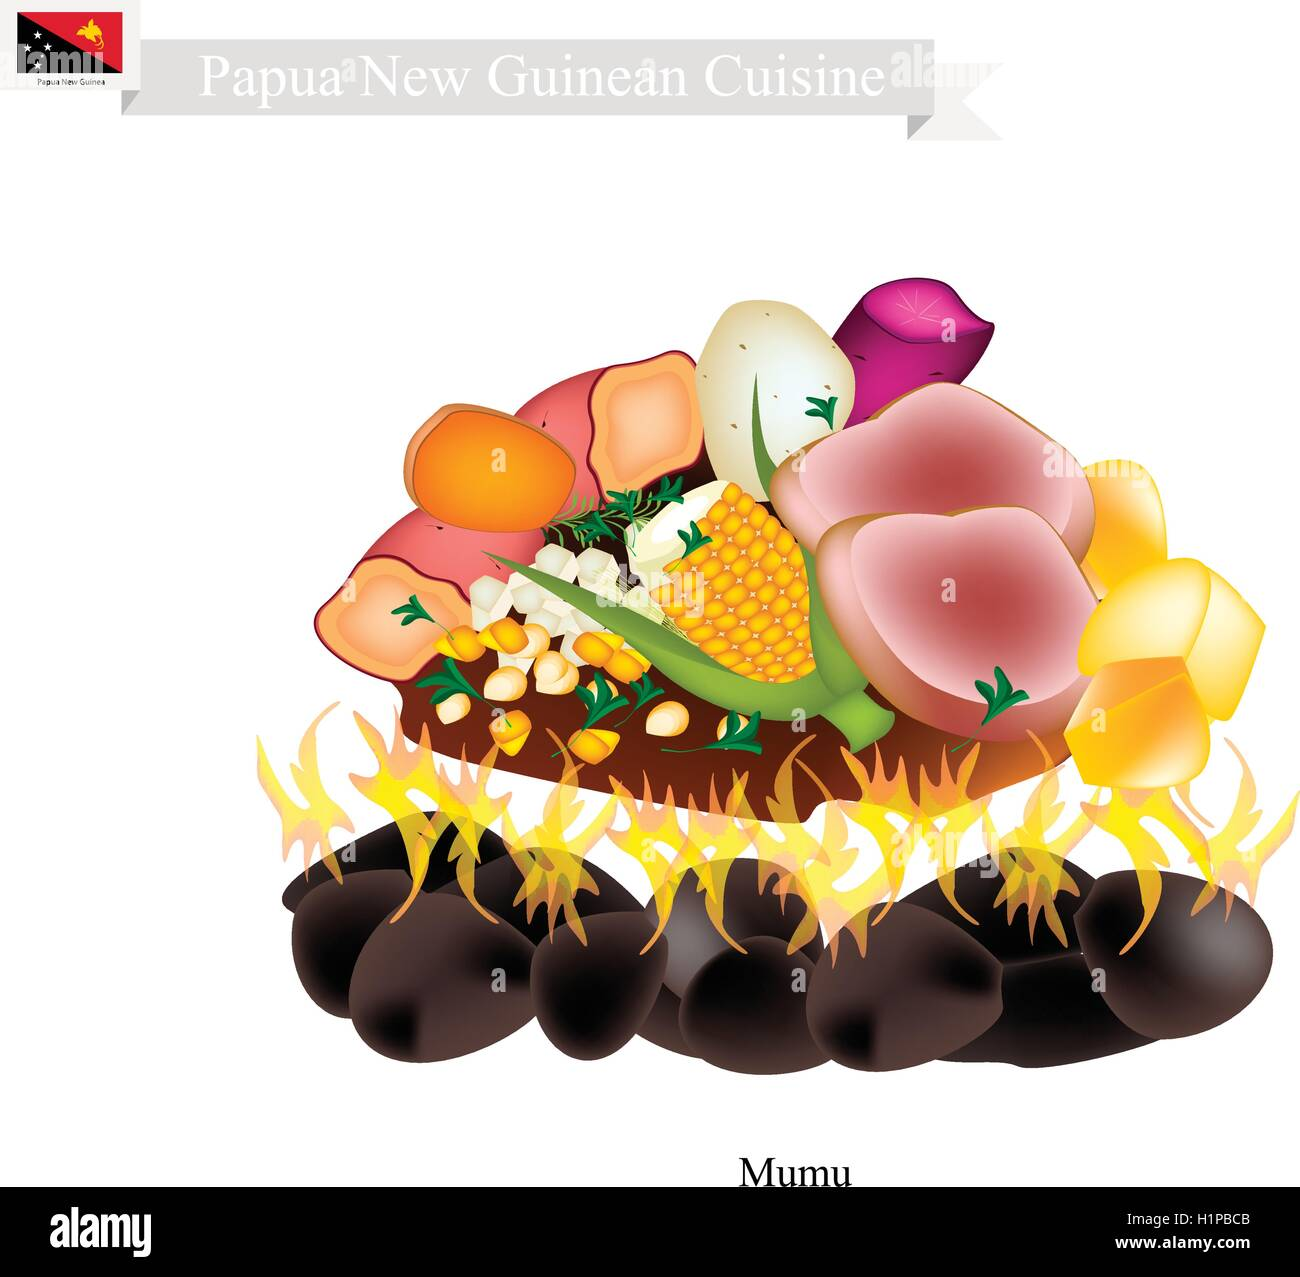 Papua New Guinean Cuisine, Illustration of Mumu or Traditional Maori Food Using Heated Rocks Buried in A Pit Oven. - Stock Vector